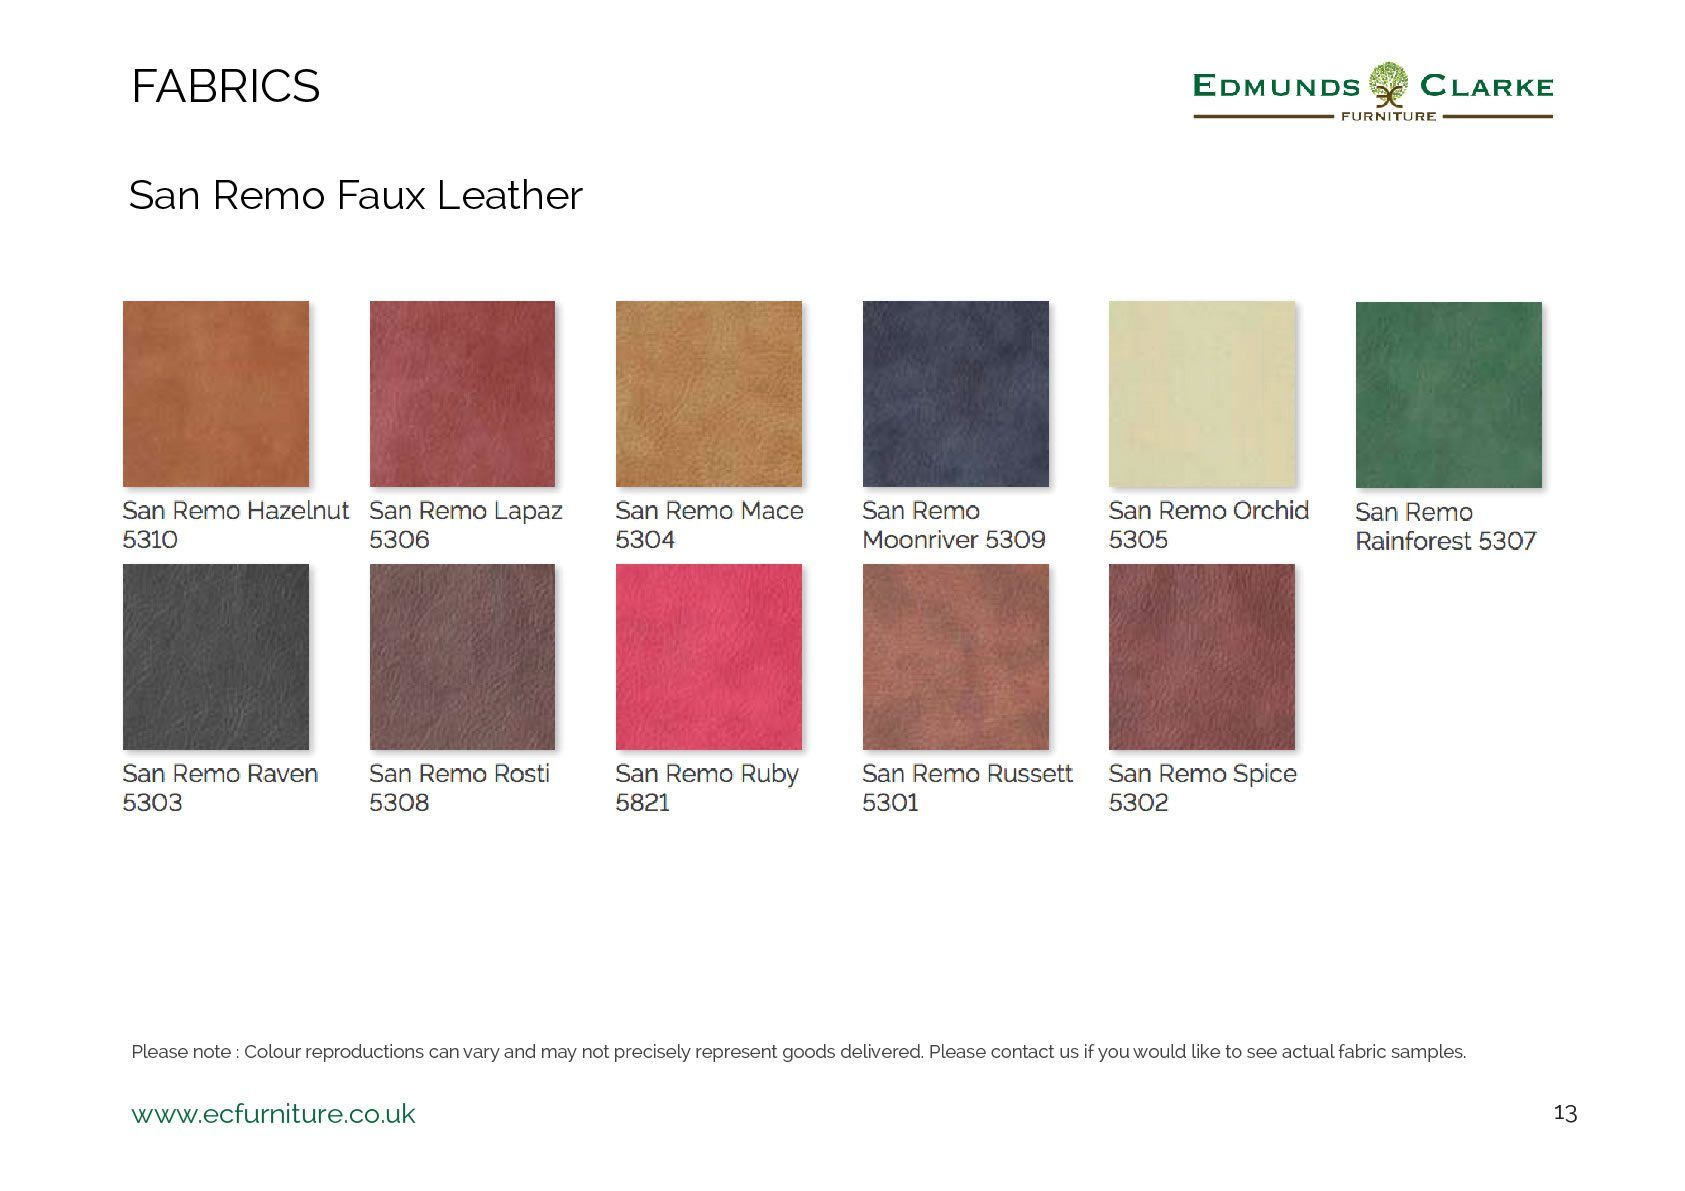 San remo faux leather swatches for our Edmunds chairs